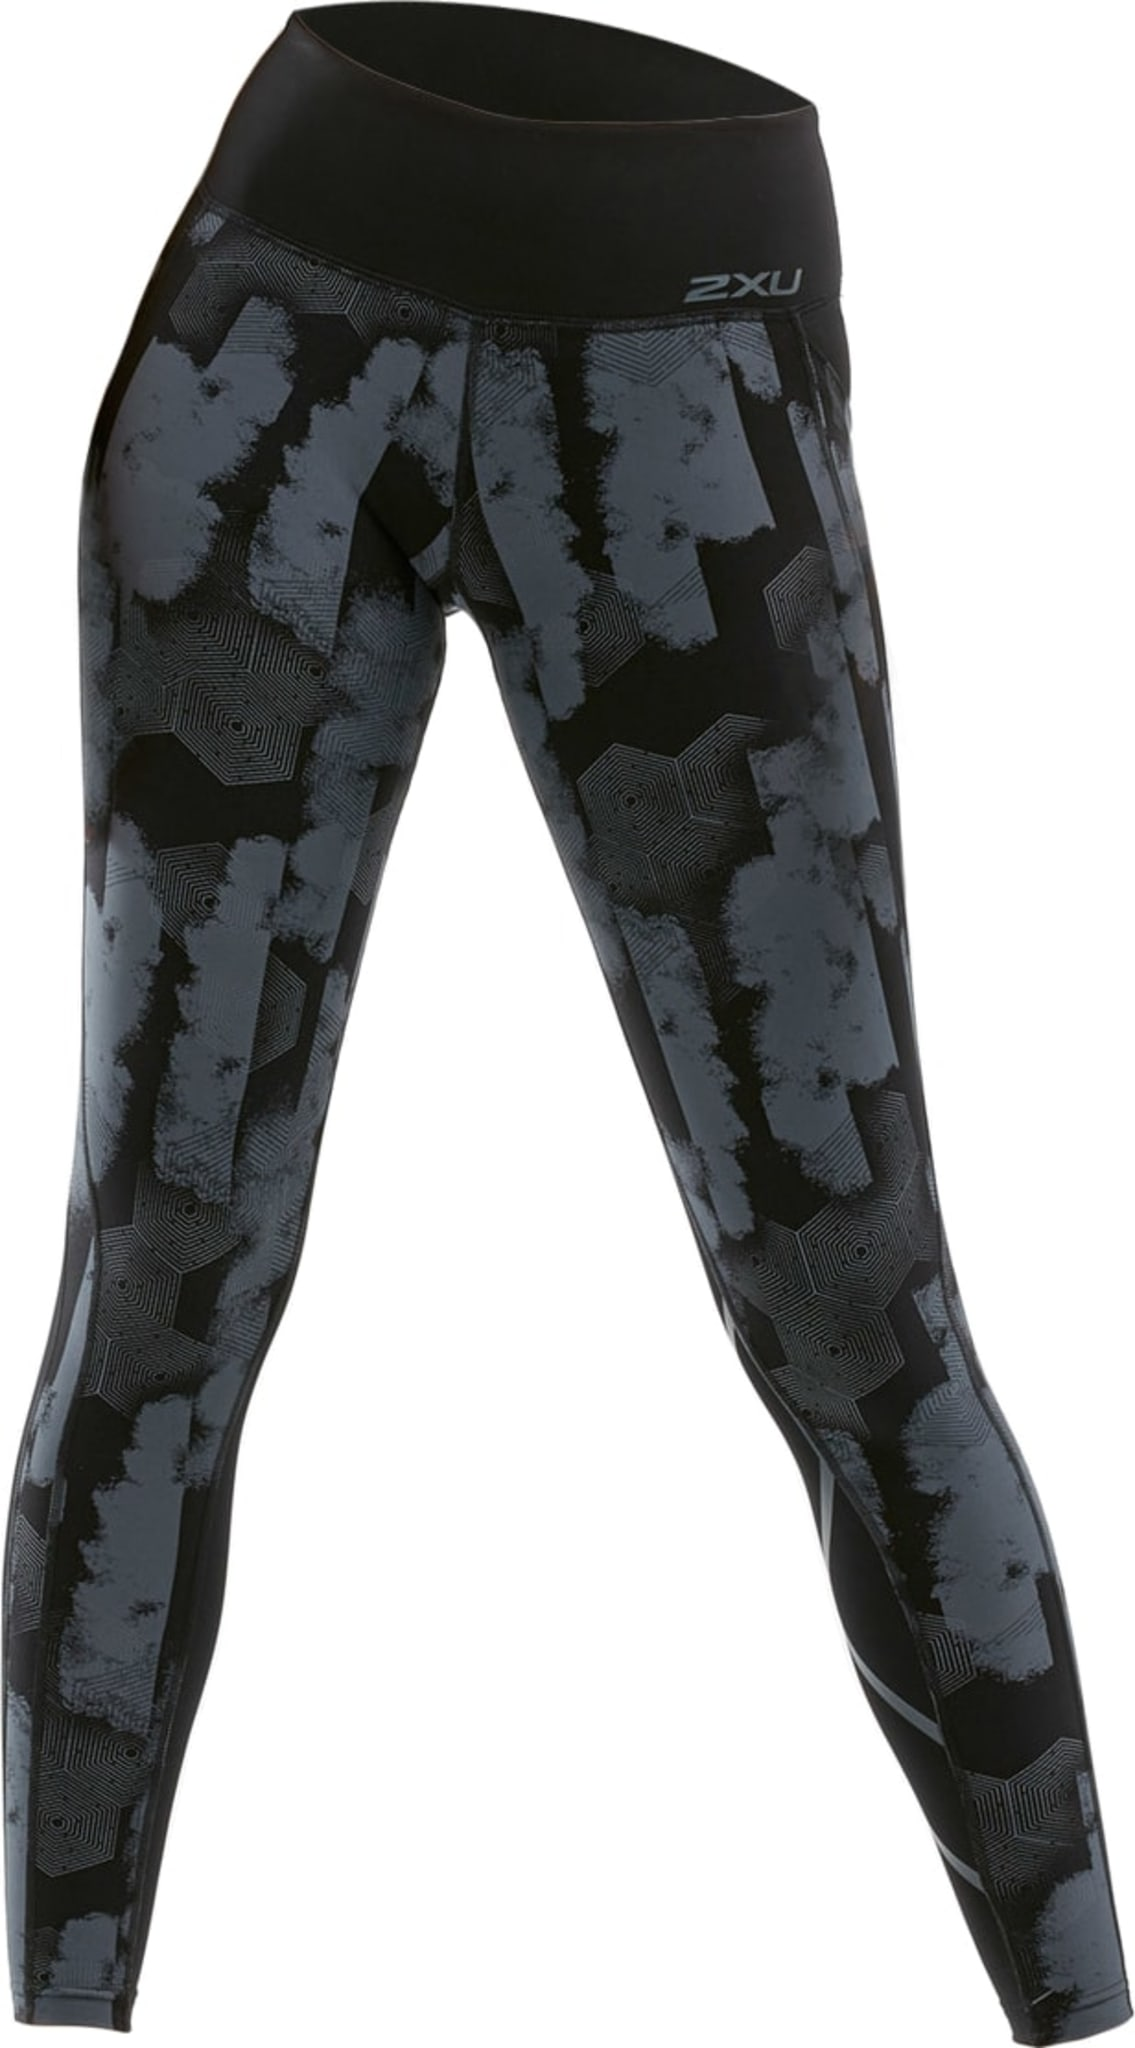 Mid Rise Pocket Compression Tight W